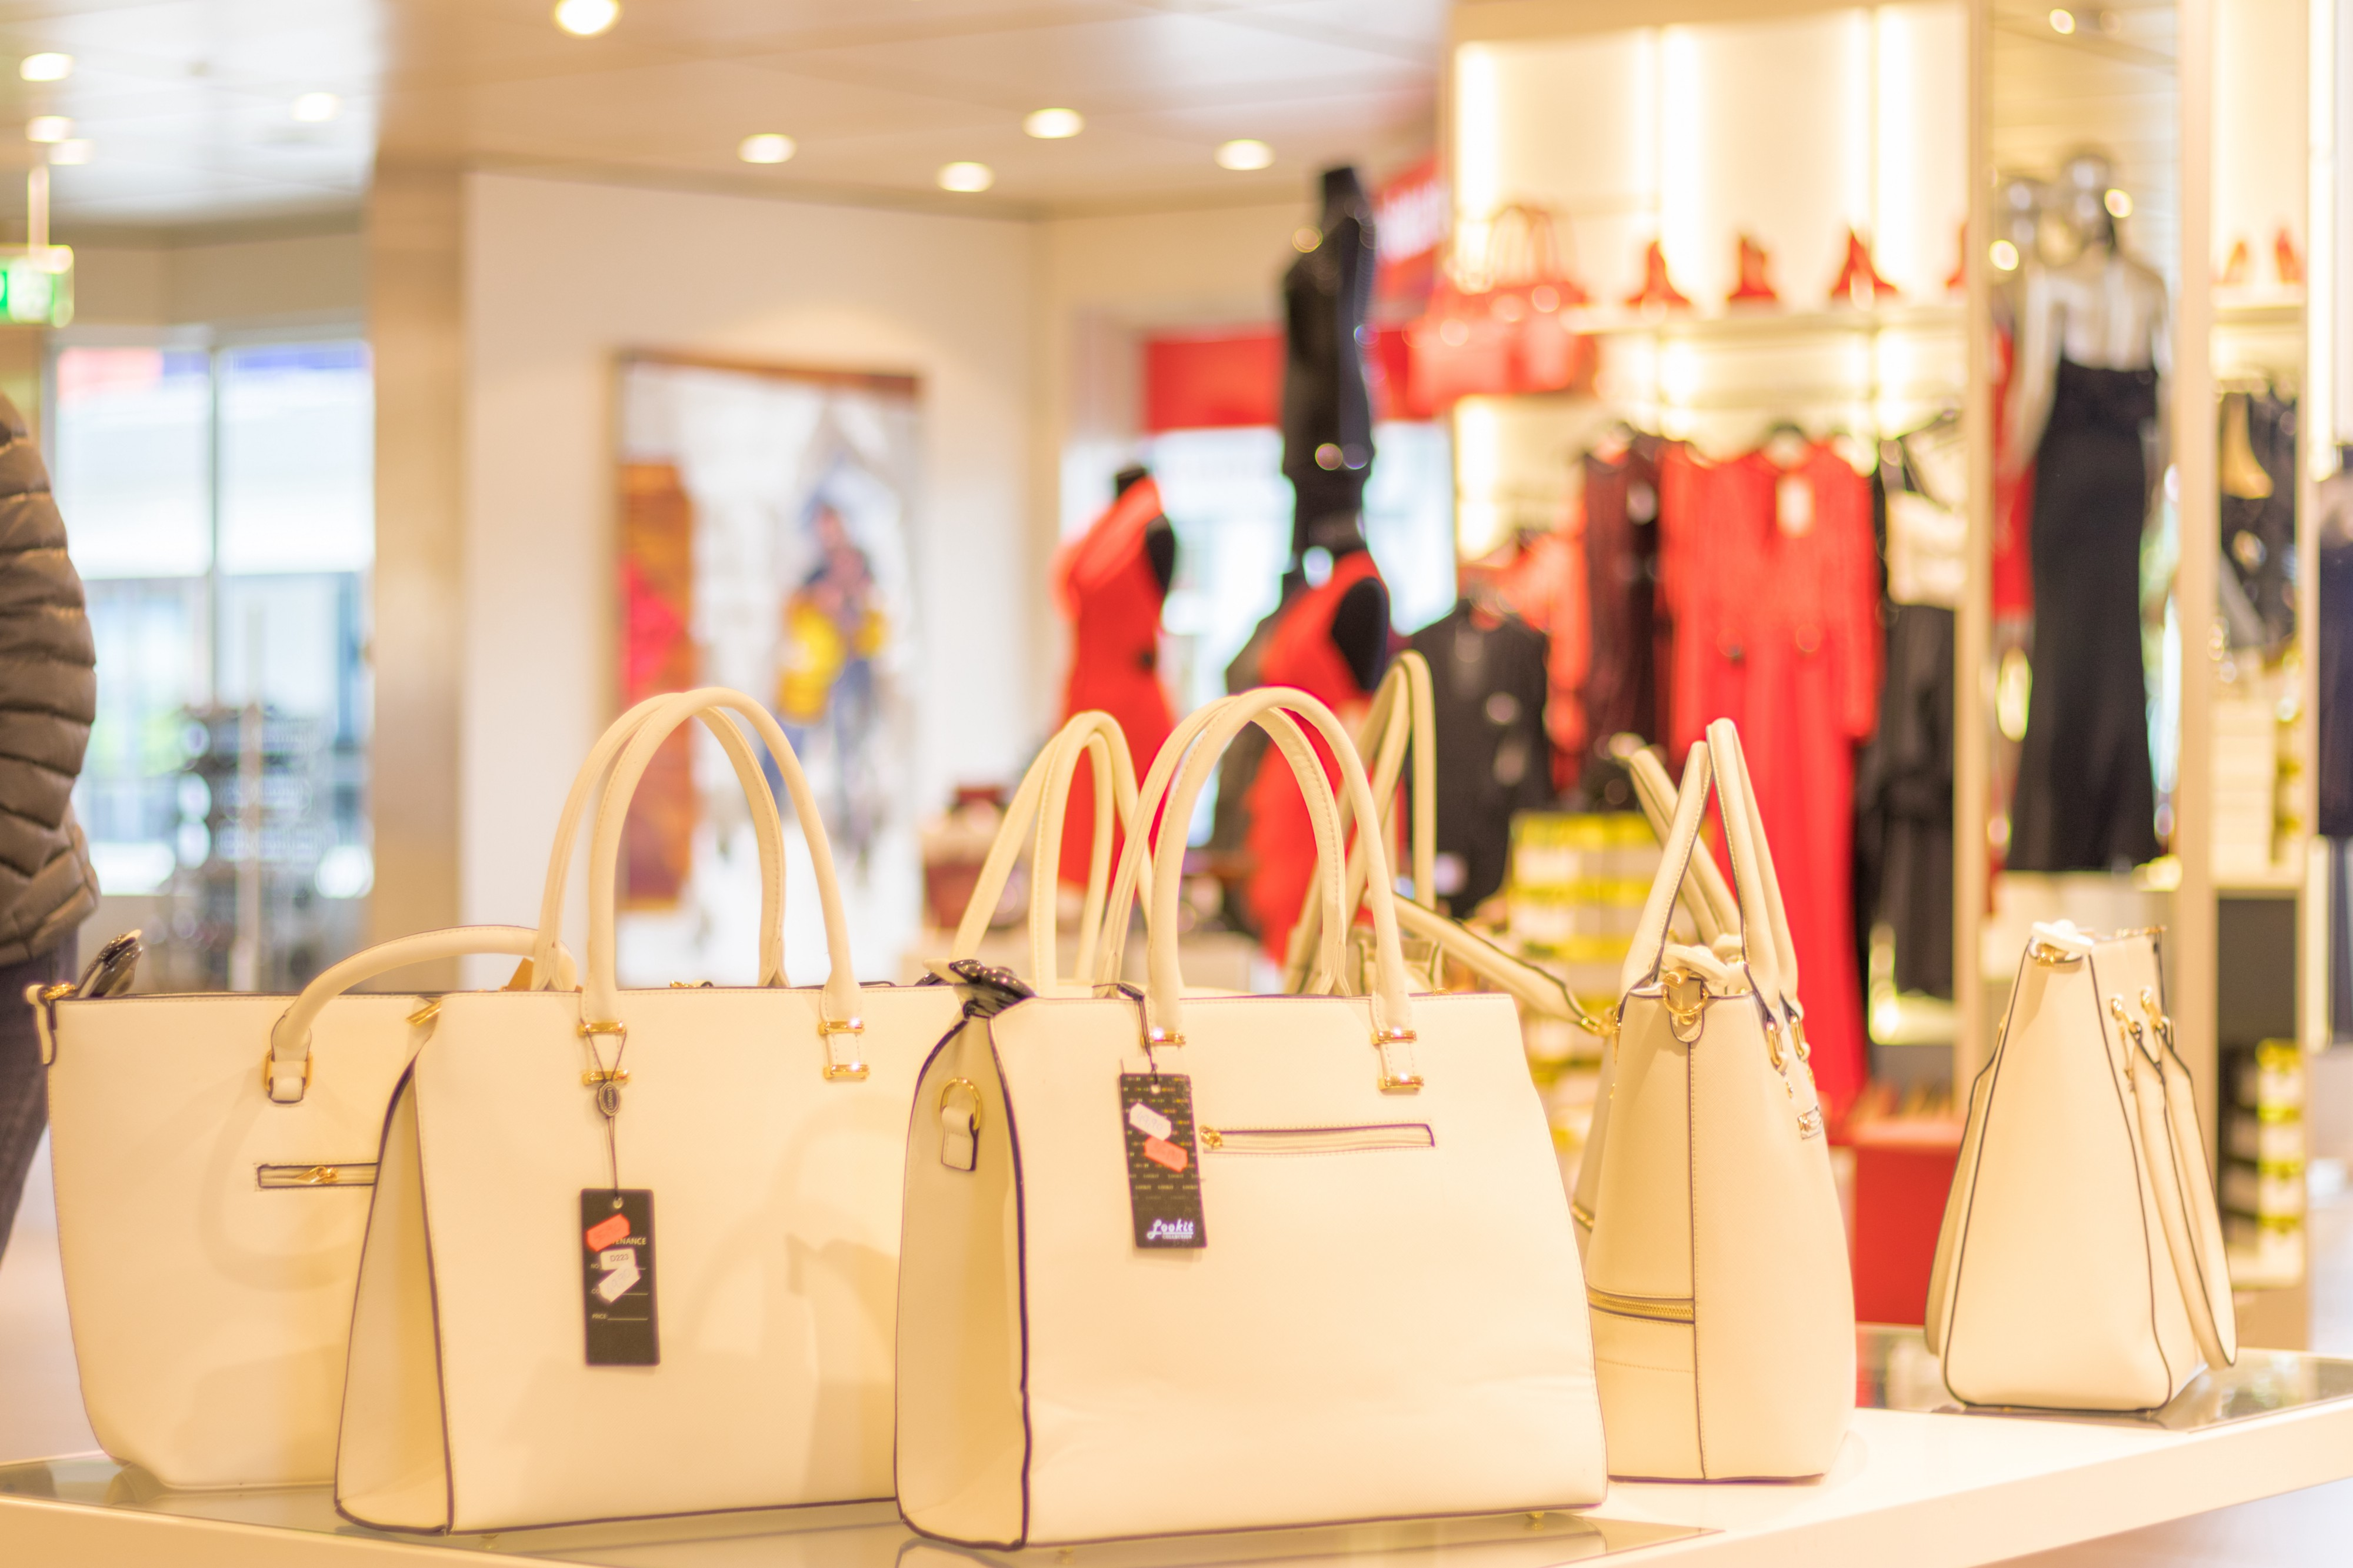 Display of off-white handbags in what looks like a department store